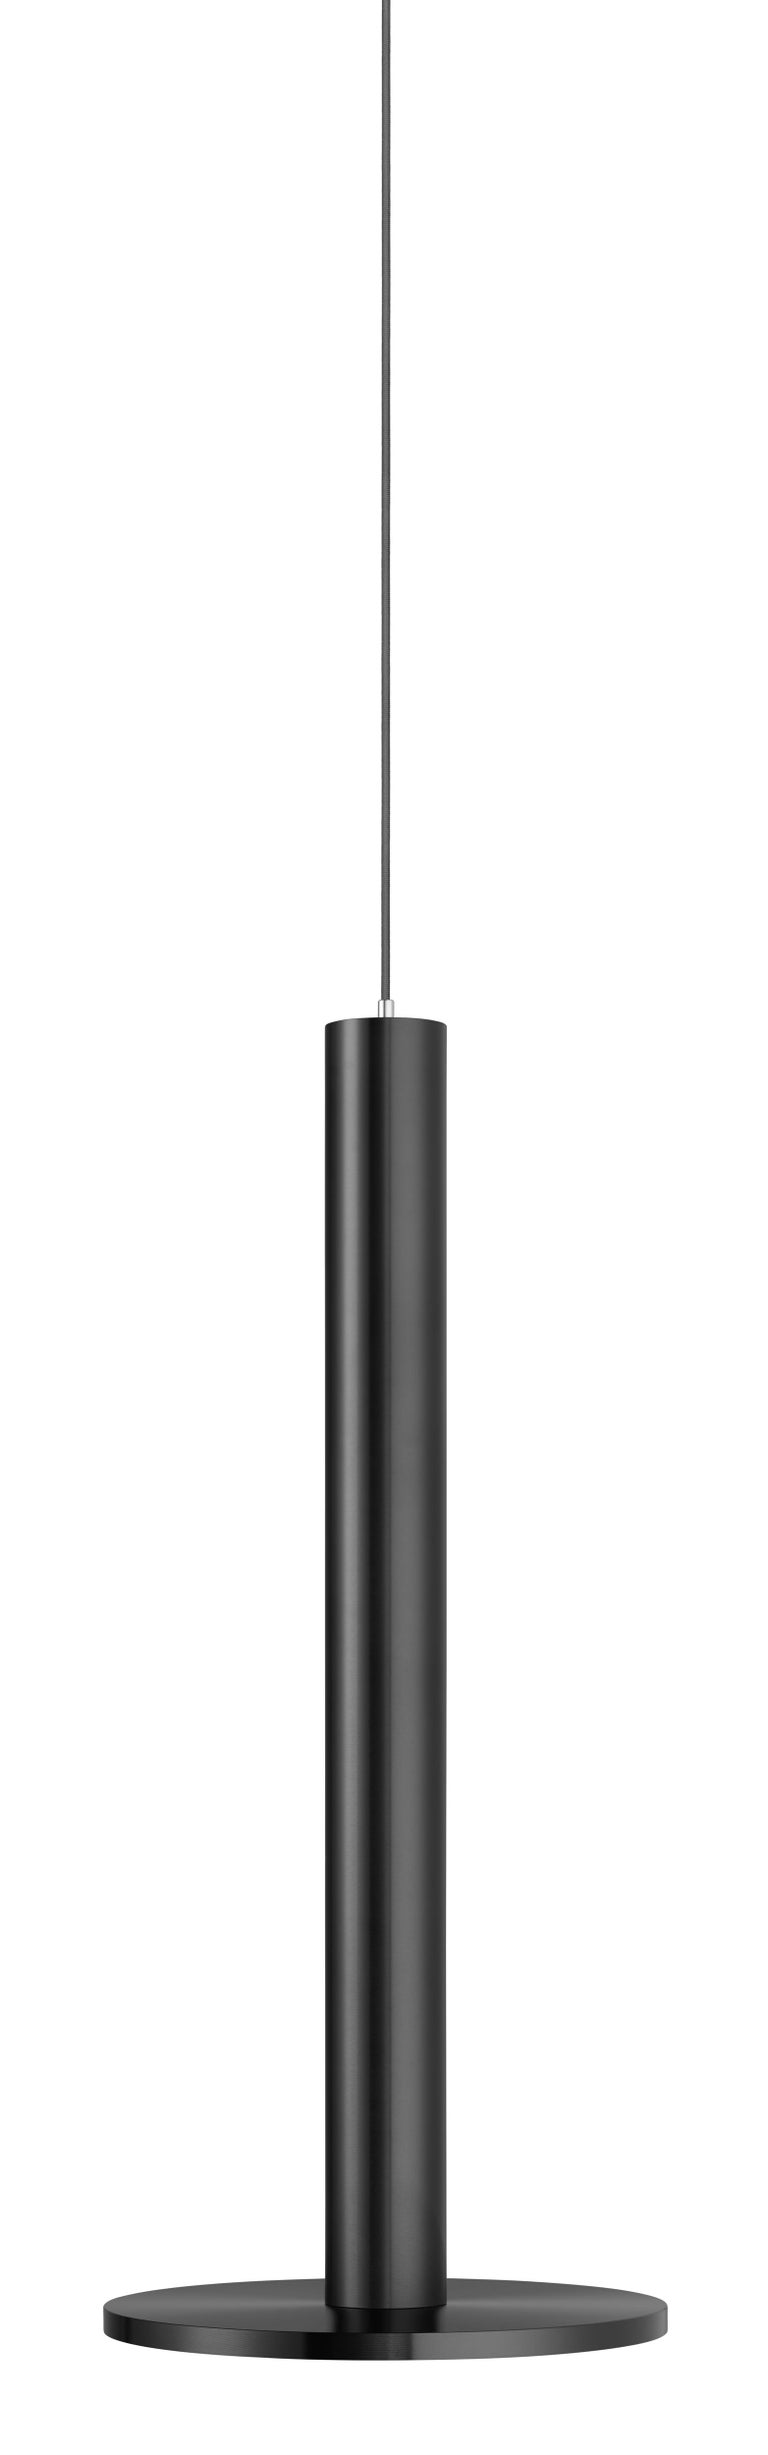 The minimalist Cielo pendant Series is expanding to include the stunning new Cielo XL, a taller and slimmer design offering premium machined aluminium finishes and boasting a warm and brilliant 1200 lumen output. Cielo XL is scaled perfectly for